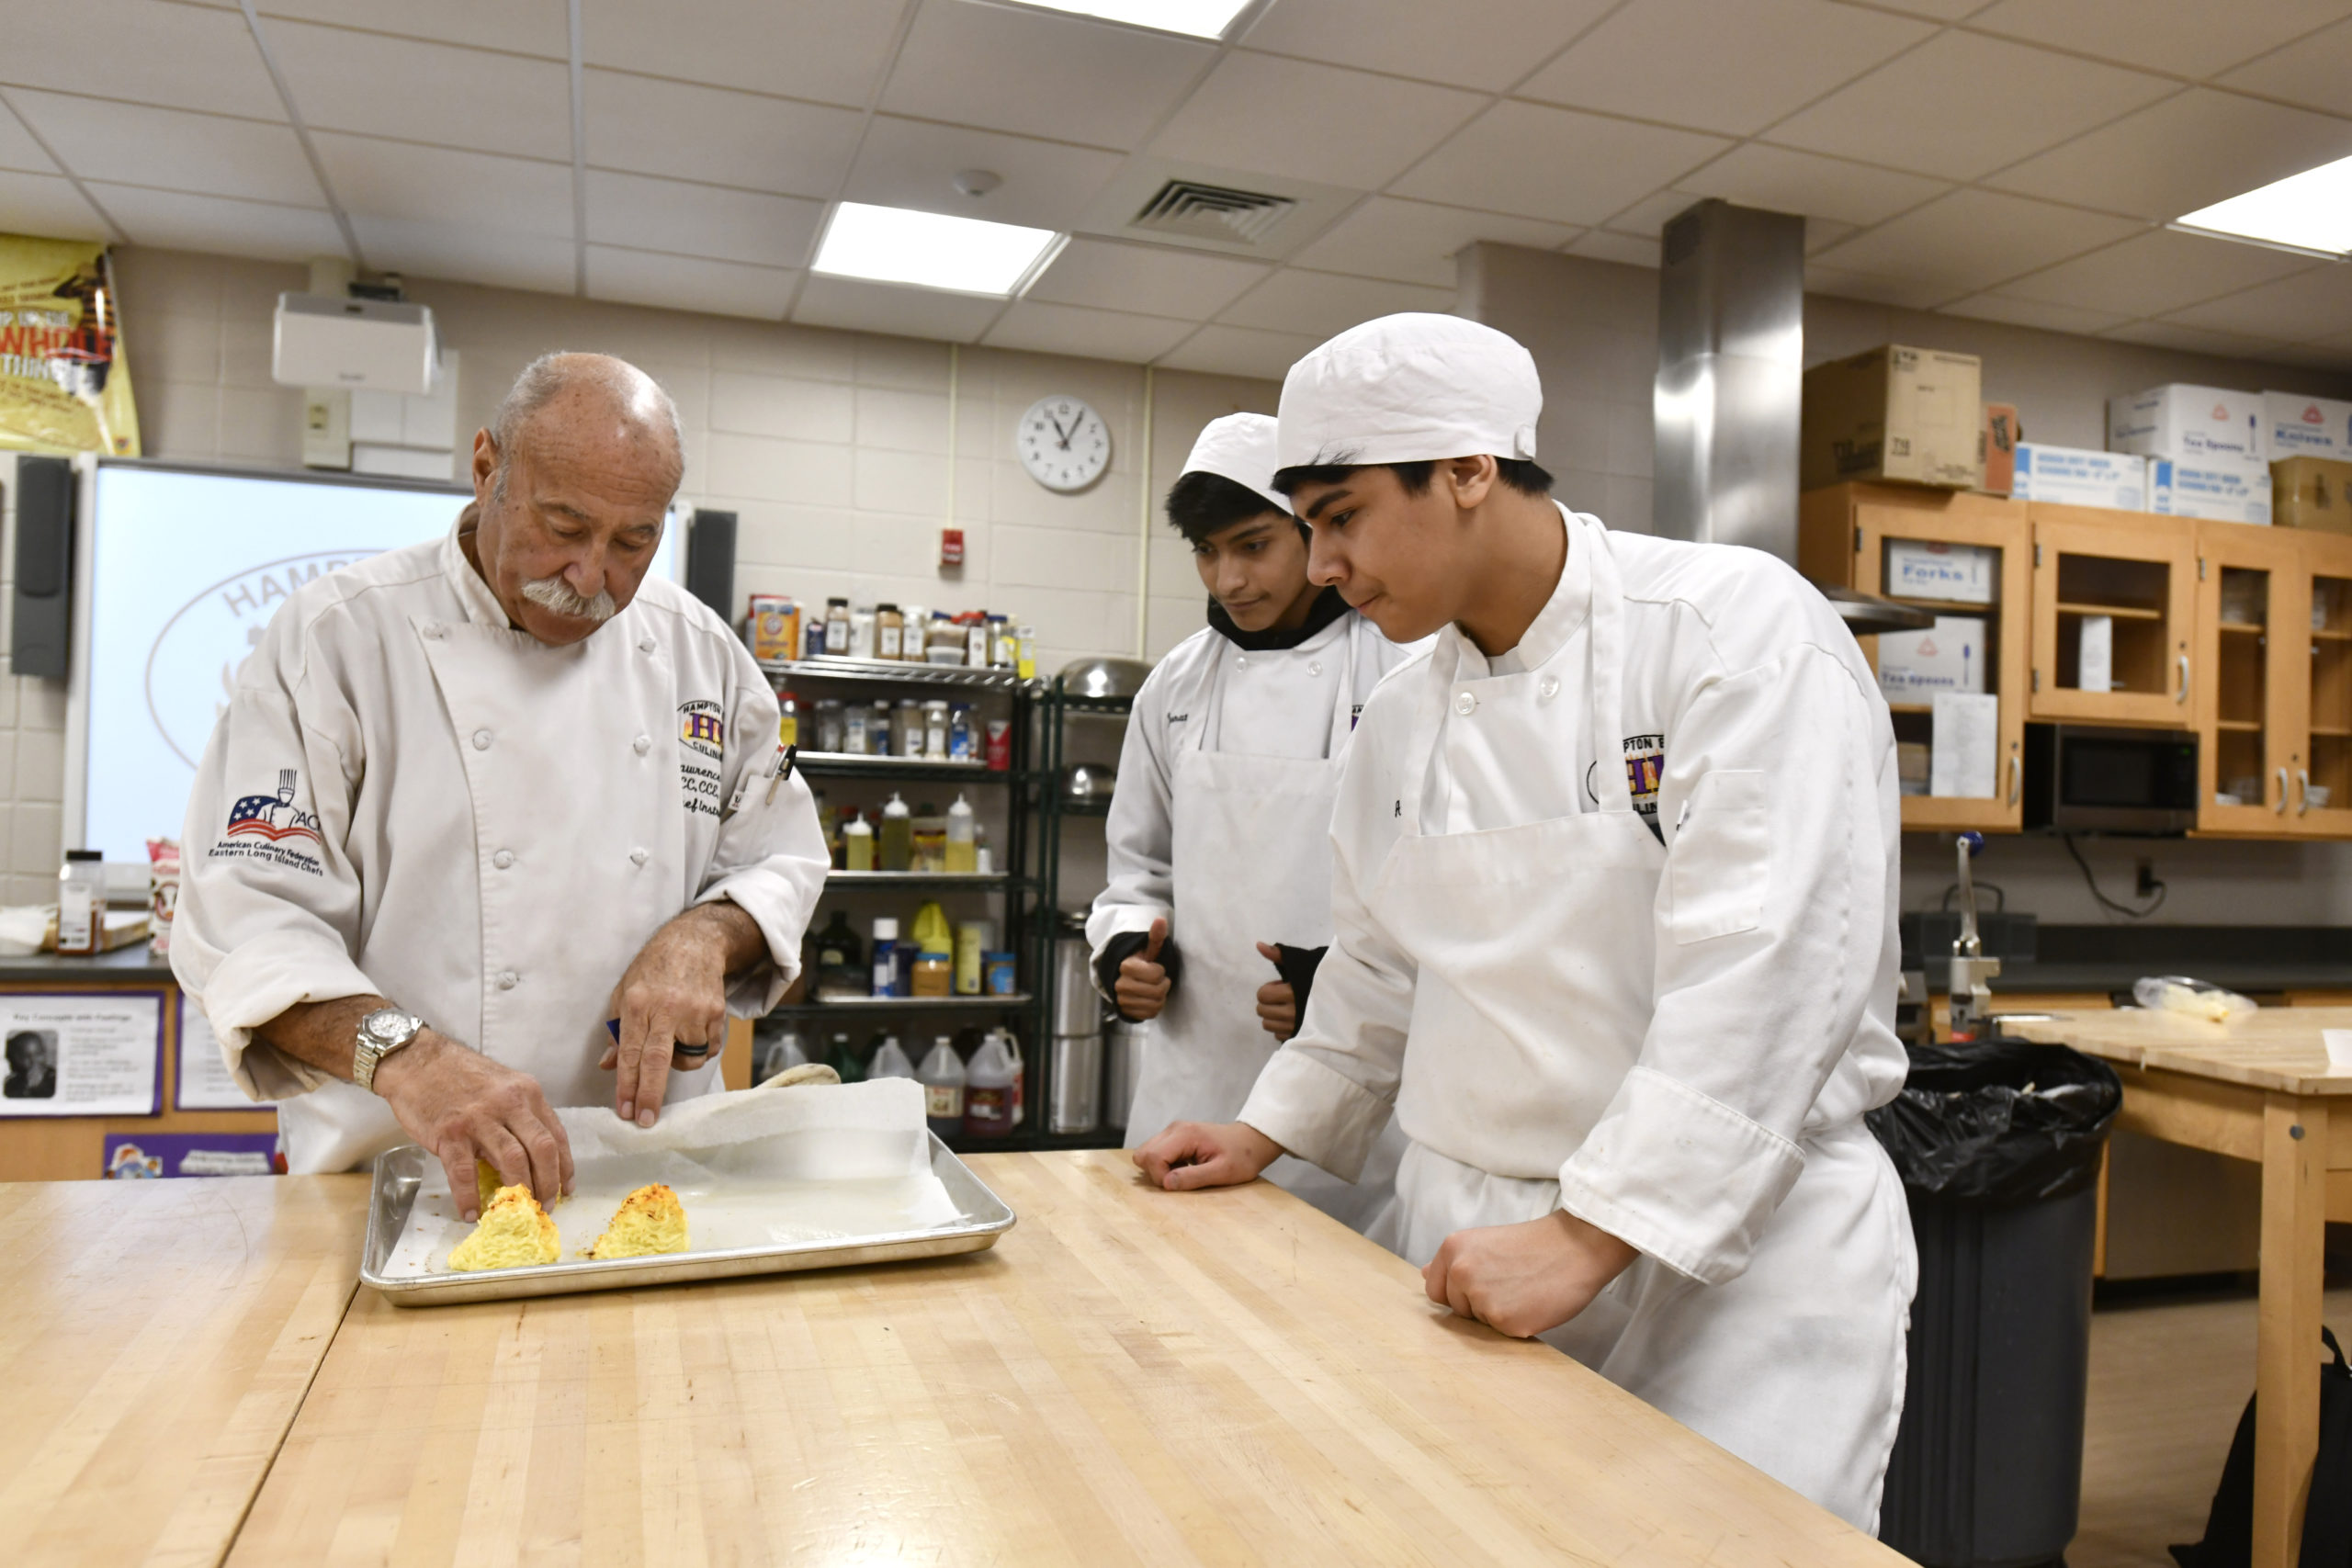 Chef Larry Weiss works with his students during the culinary class at Hampton Bays High School on Thursday, February 6. DANA SHAW